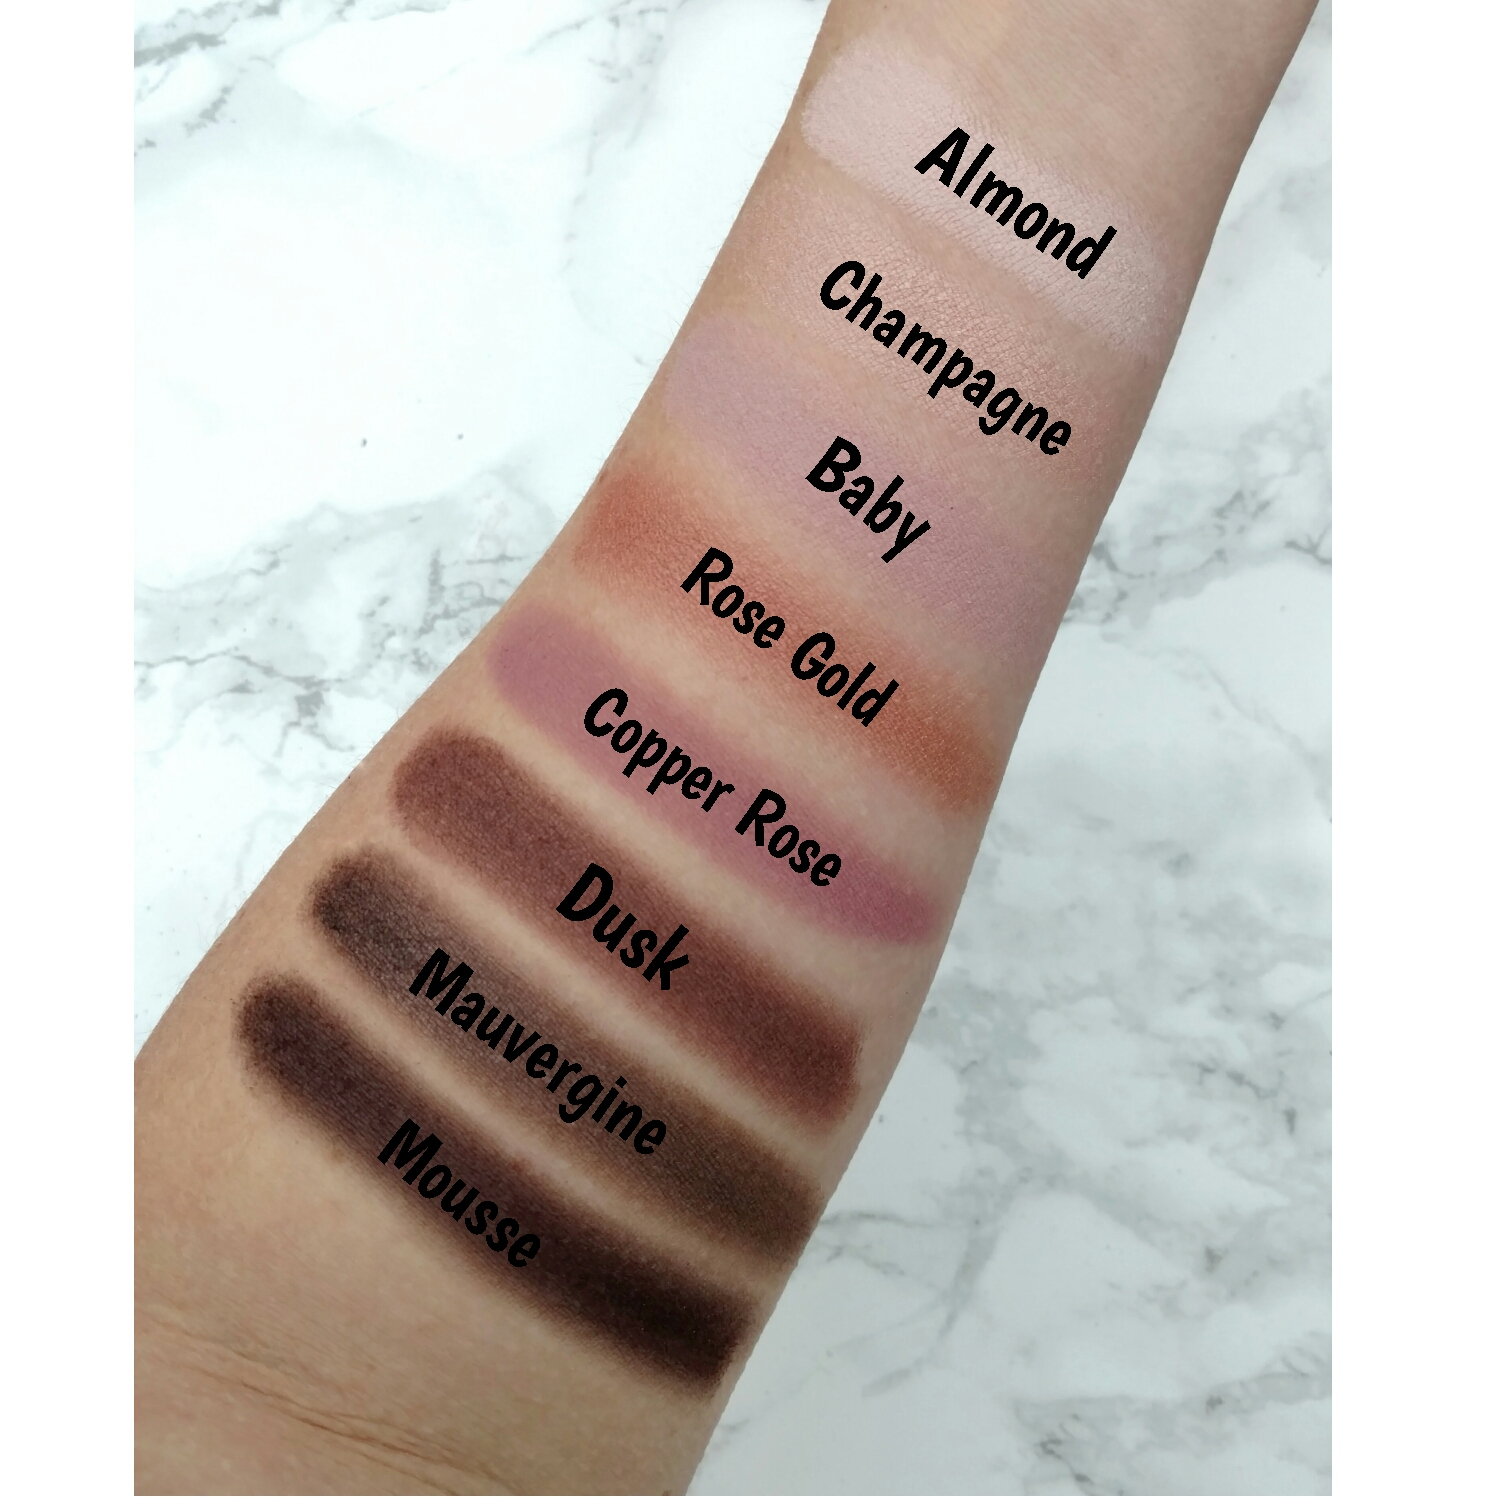 Covergirl TruNaked Roses Palette swatches